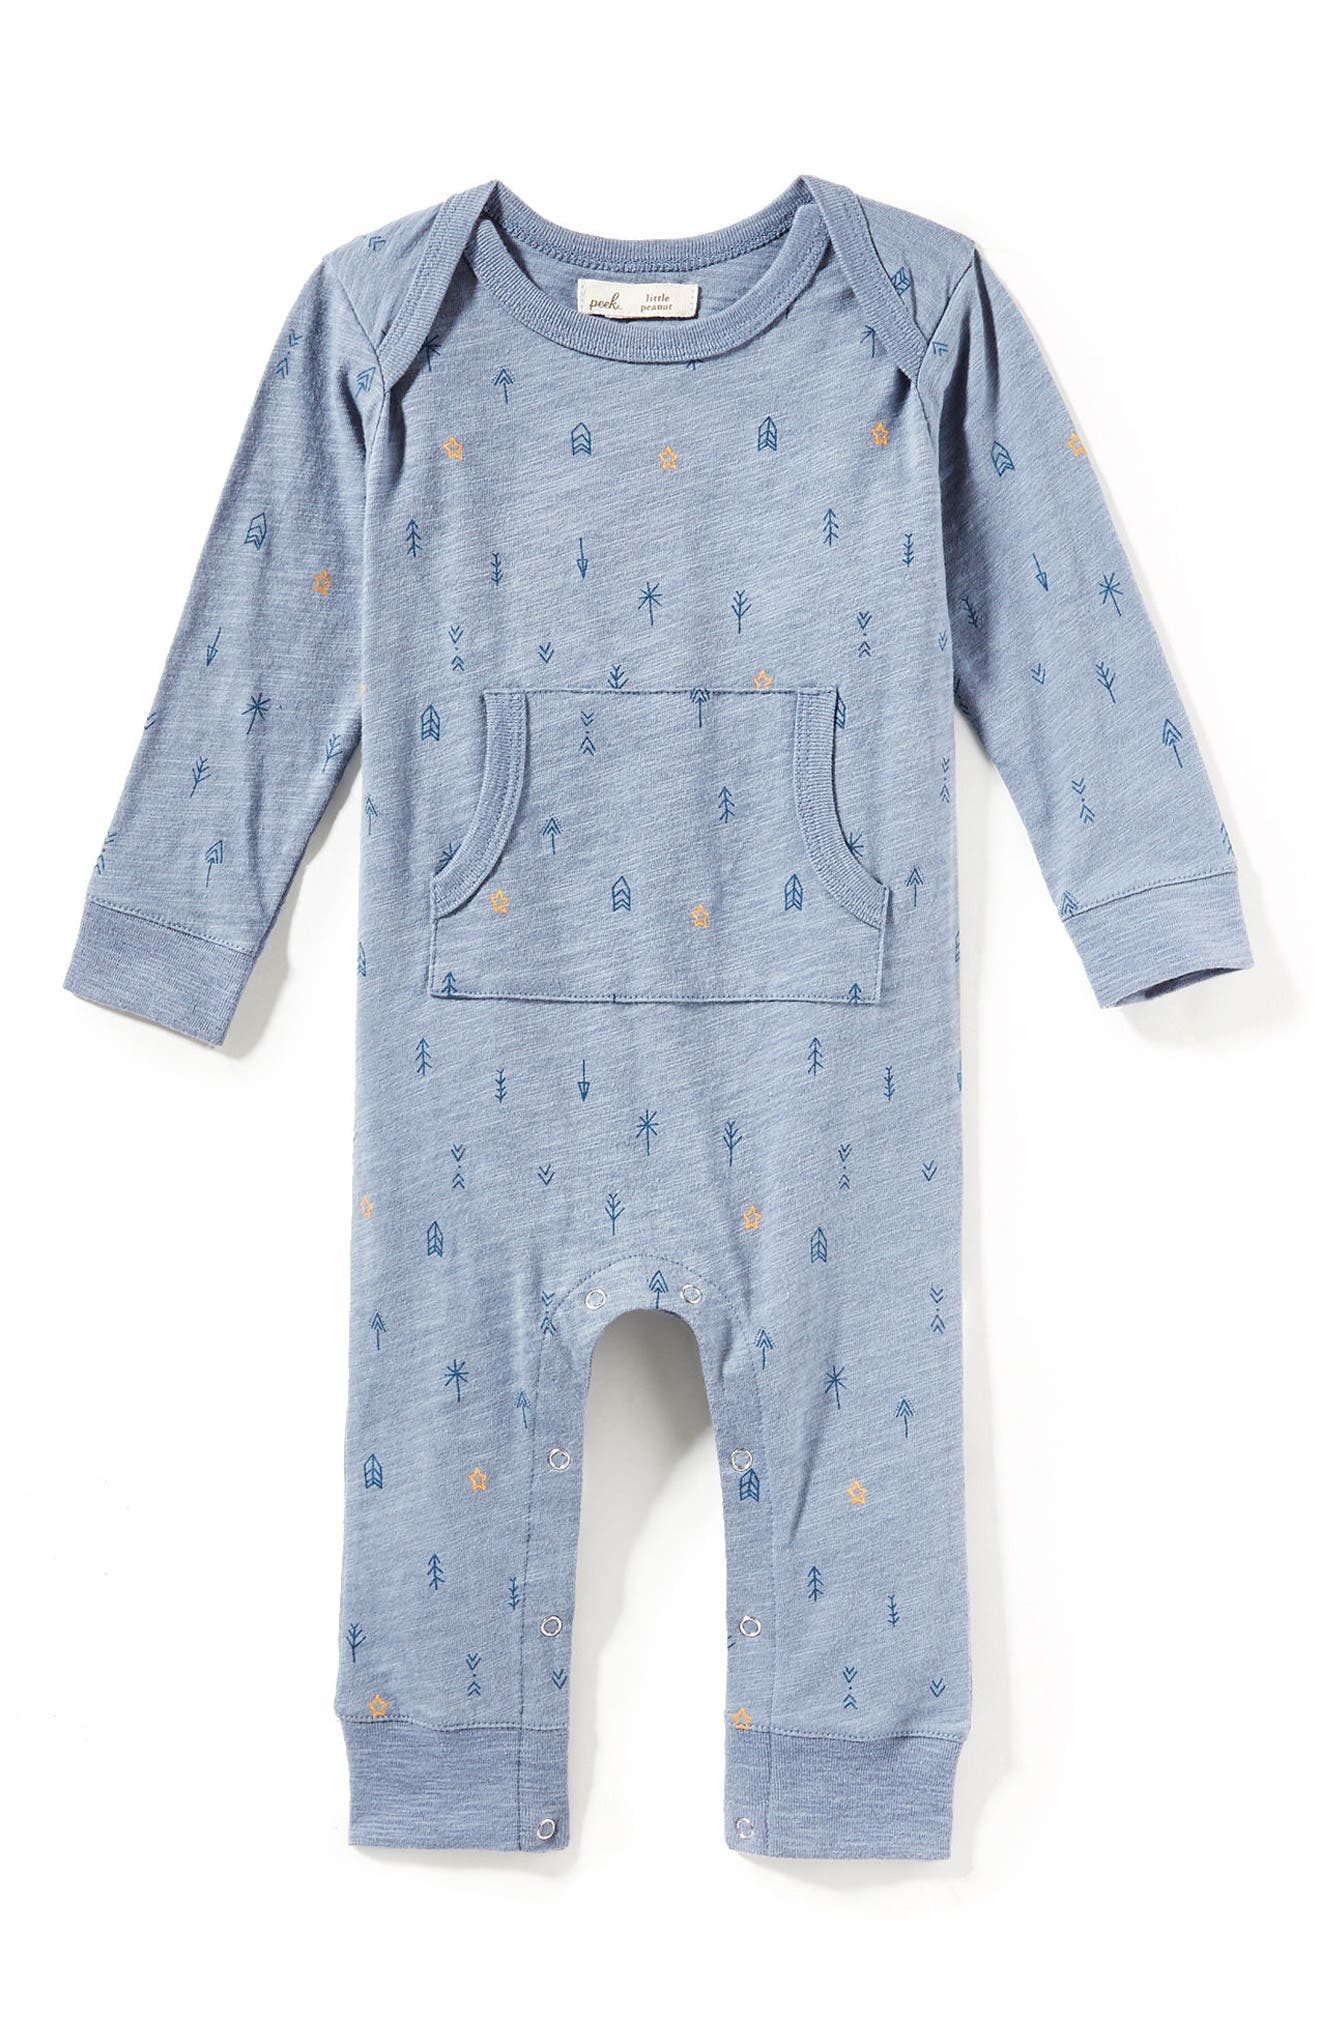 Main Image - Peek Arrow Romper (Baby Boys)